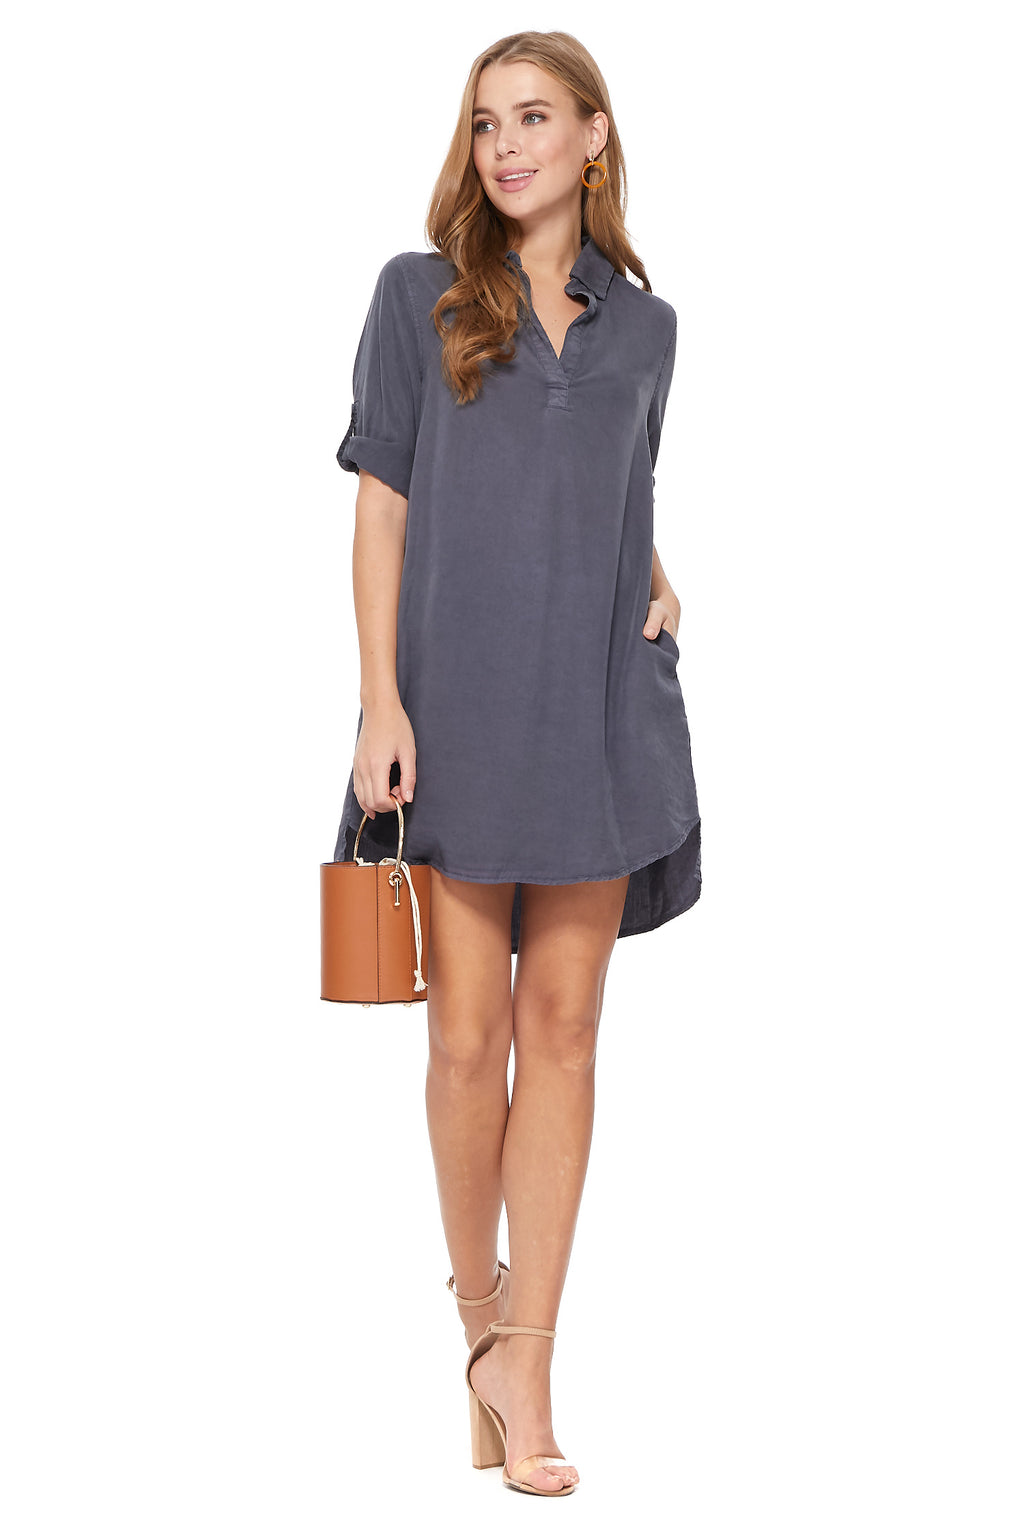 Nova Dress in Grey